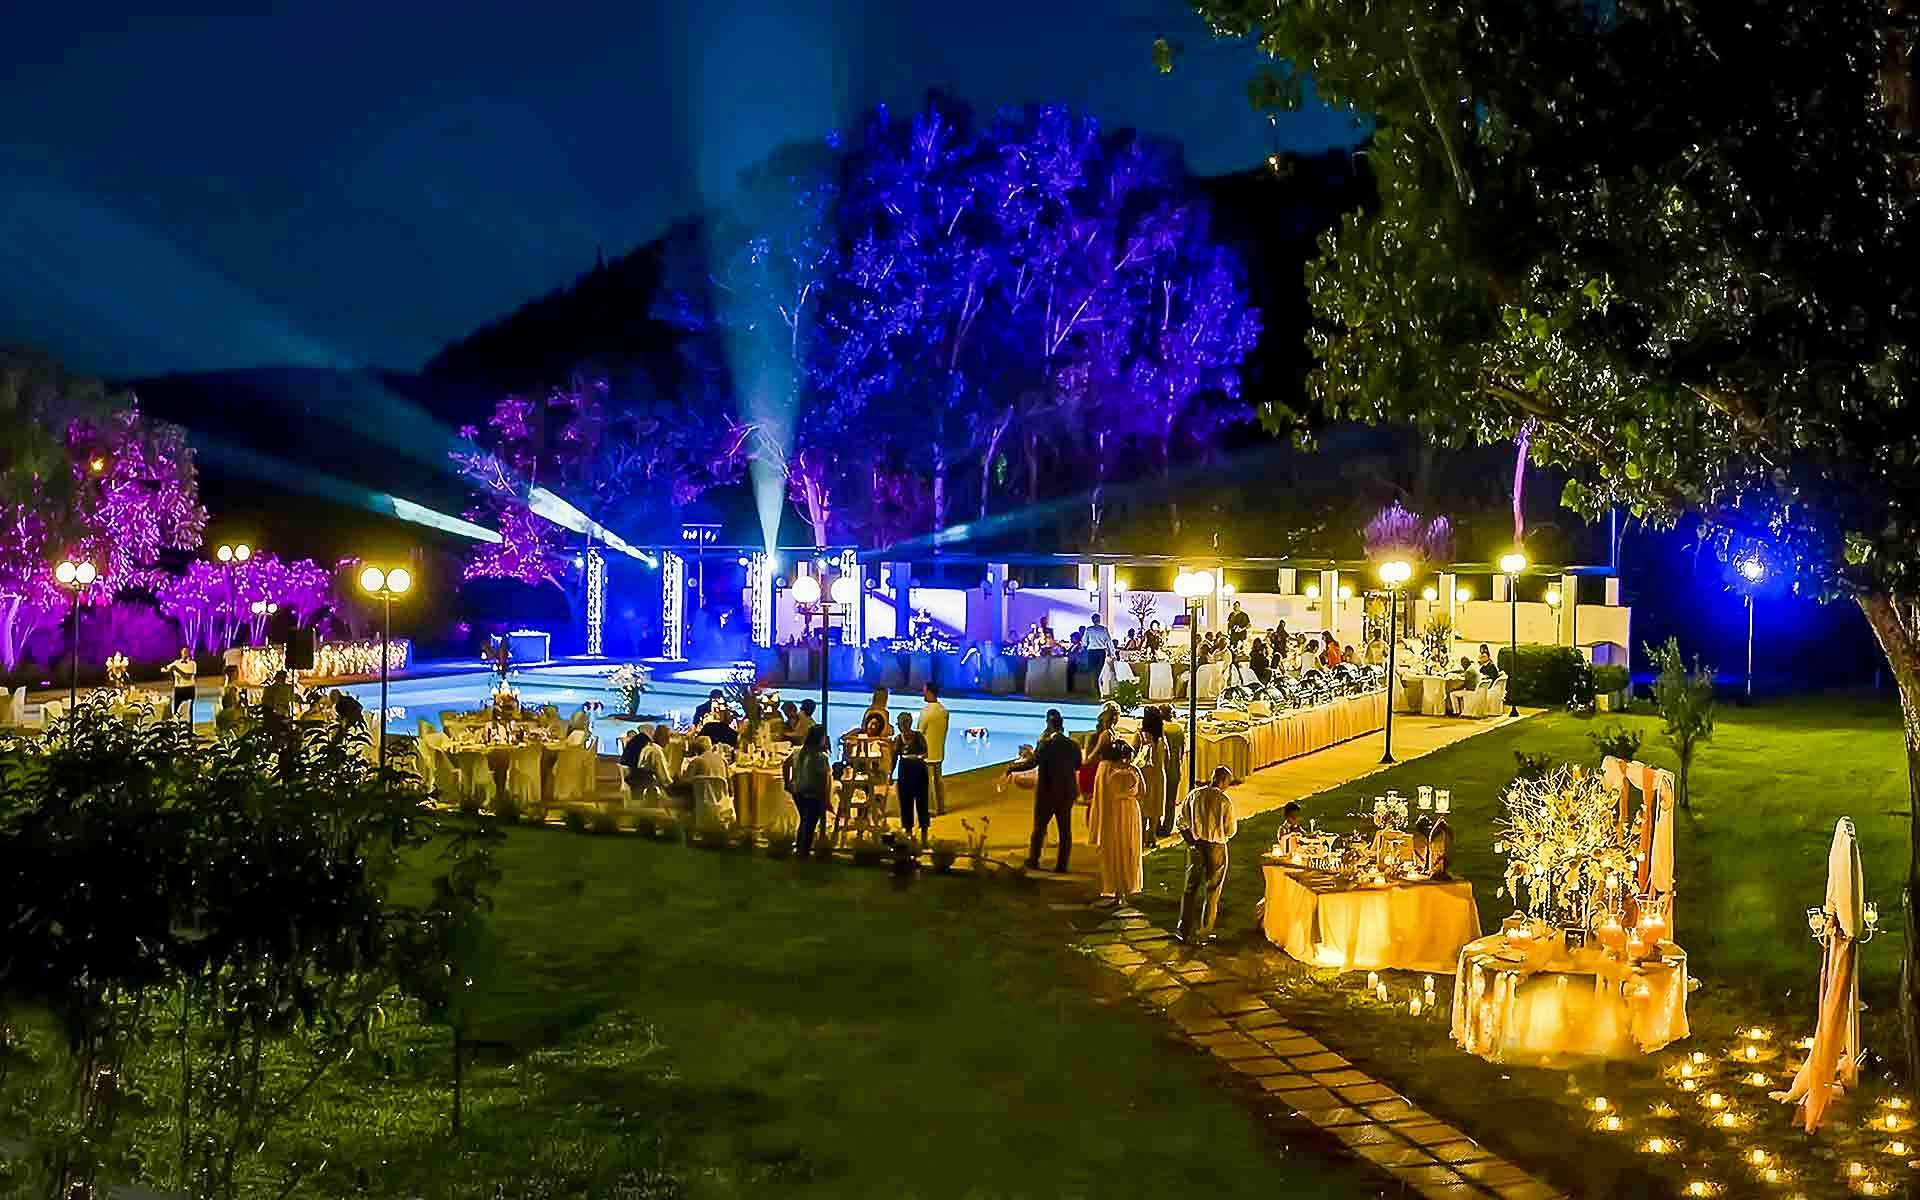 Hotel-Amalias-Reception-Venue-Archaia-Olympia-Greece